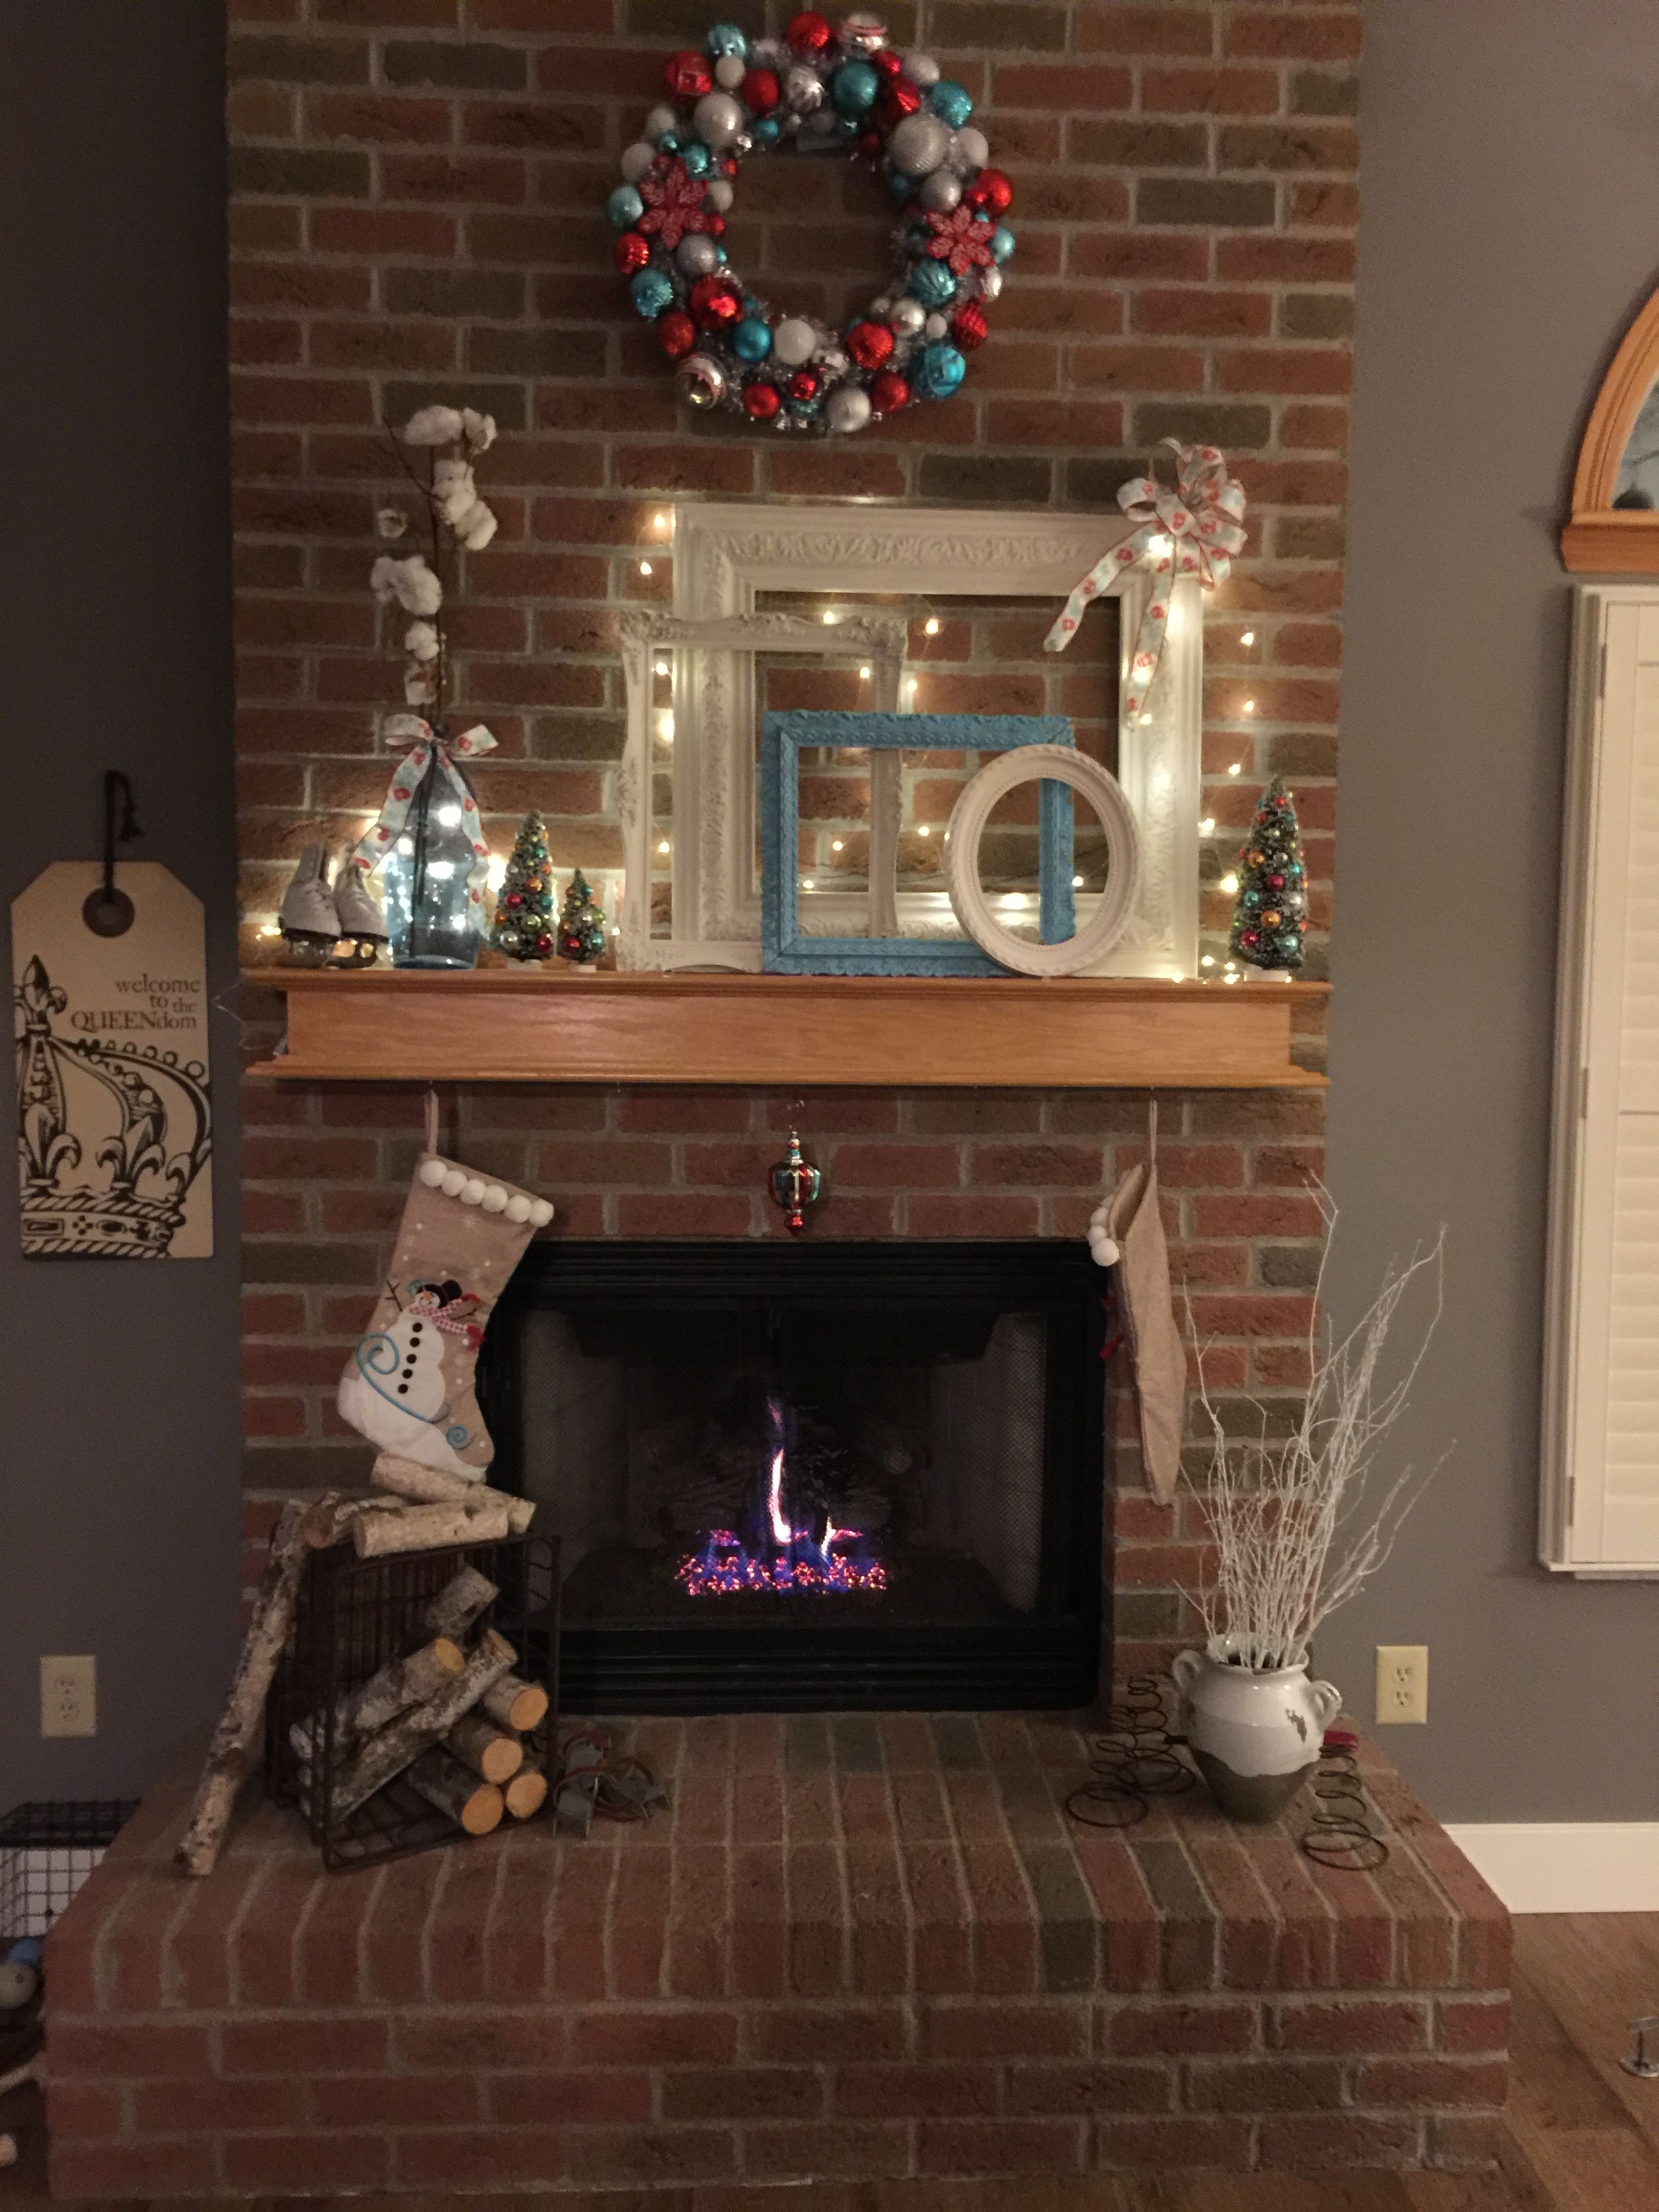 Red and turquoise Christmas fireplace decorations ...